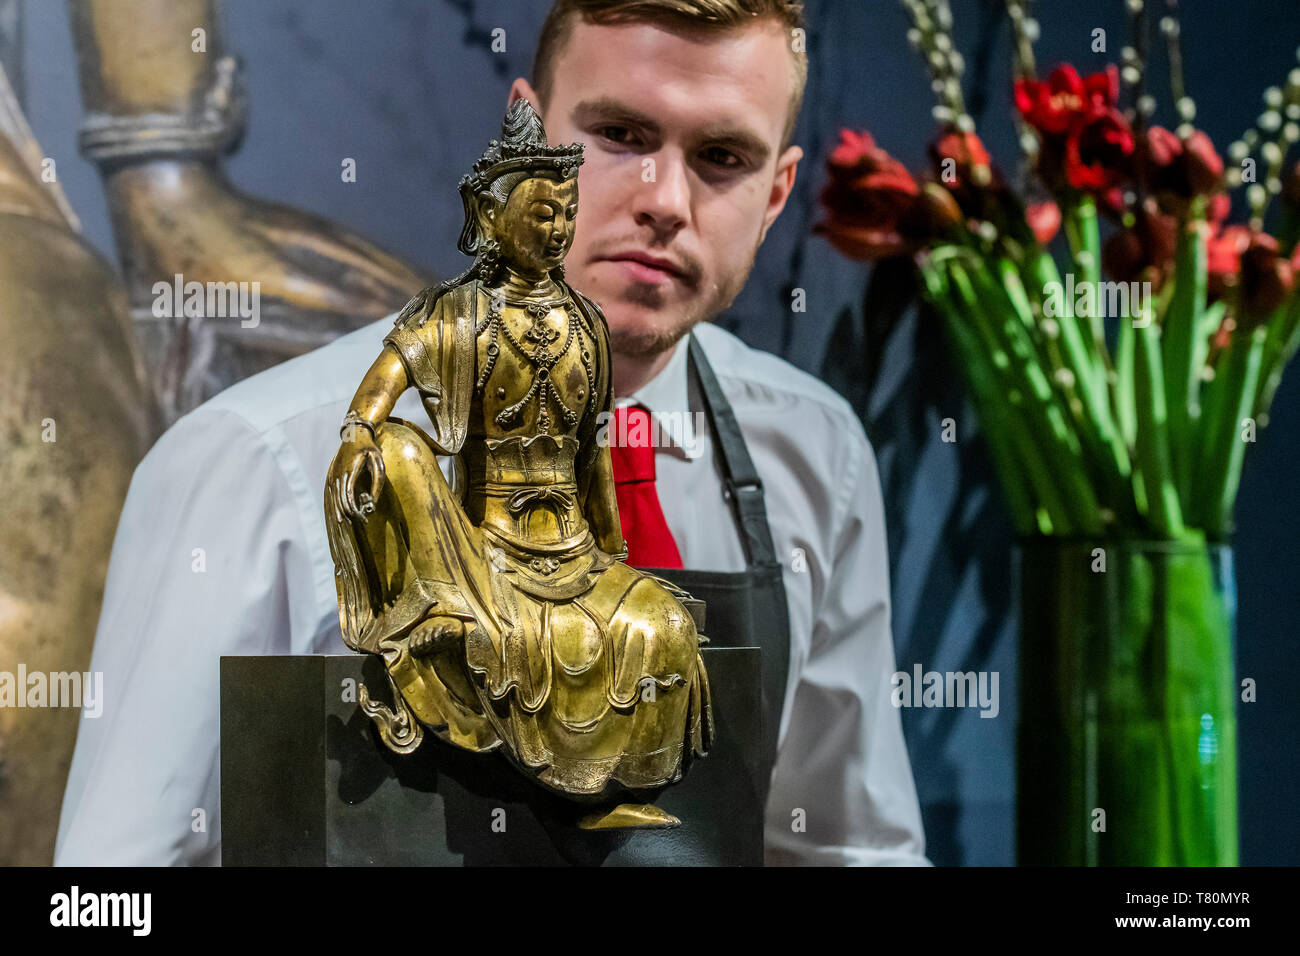 London, UK. 10th May, 2019. An early Ming Dynasty gilt-broinze seated figure of Bodhisattva, est £300-500,000 - Preview of Christie's Spring Asian Art Auctions in London. Credit: Guy Bell/Alamy Live News - Stock Image